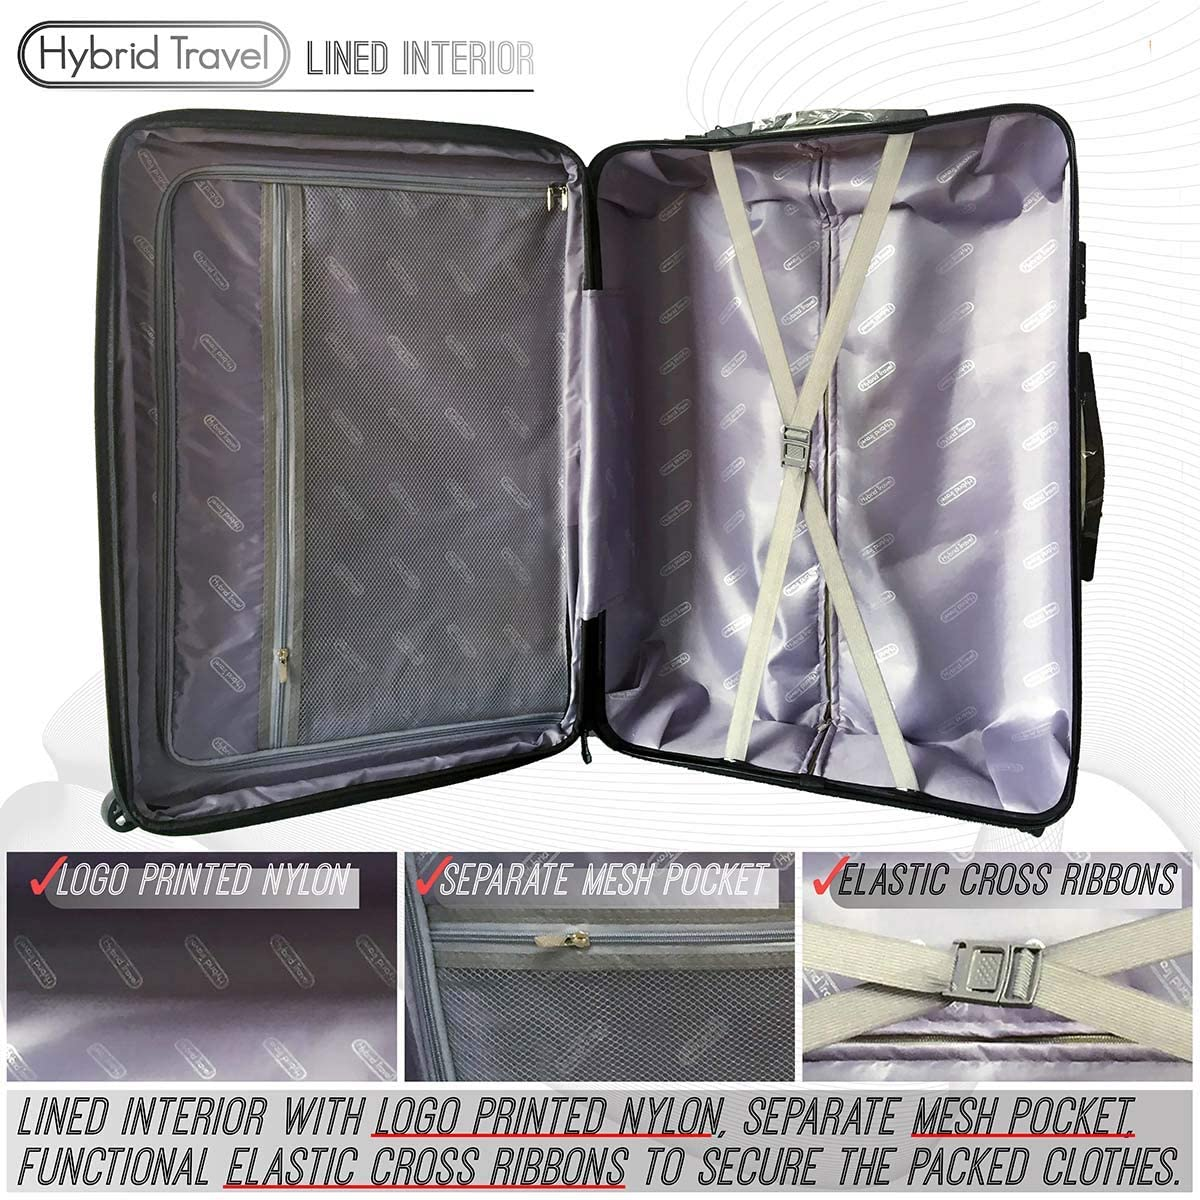 3 Pieces Black HyBrid /& Company Luggage Set Durable Lightweight Spinner Suitcase LUG3-628